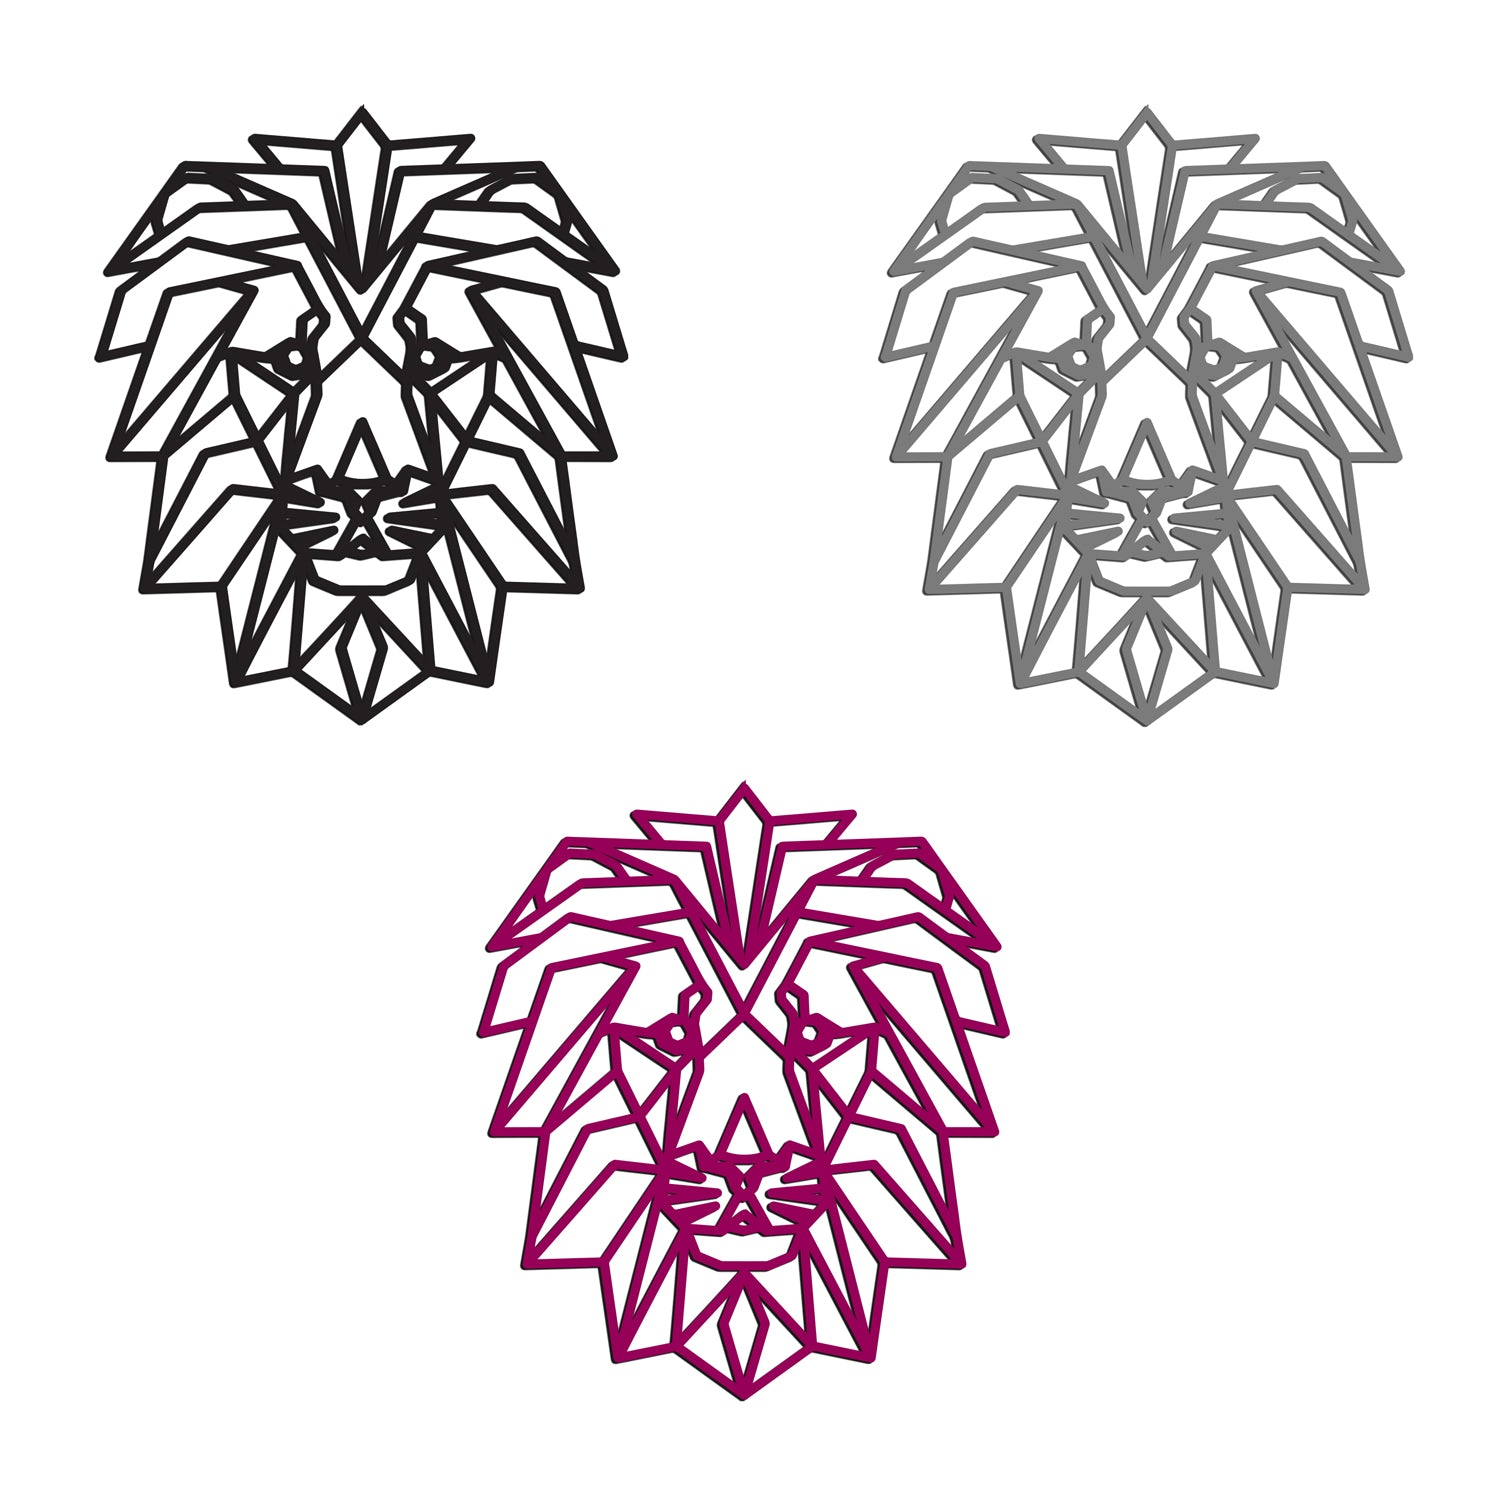 Geometric Lion Head Animal Wall Art Contemporary Wall Art Polygon Ani Ever So Personal Pes, exp, dst, hus, jef, vip, vp3. geometric lion head animal wall art contemporary wall art polygon animal outline gloss acrylic precision laser cut